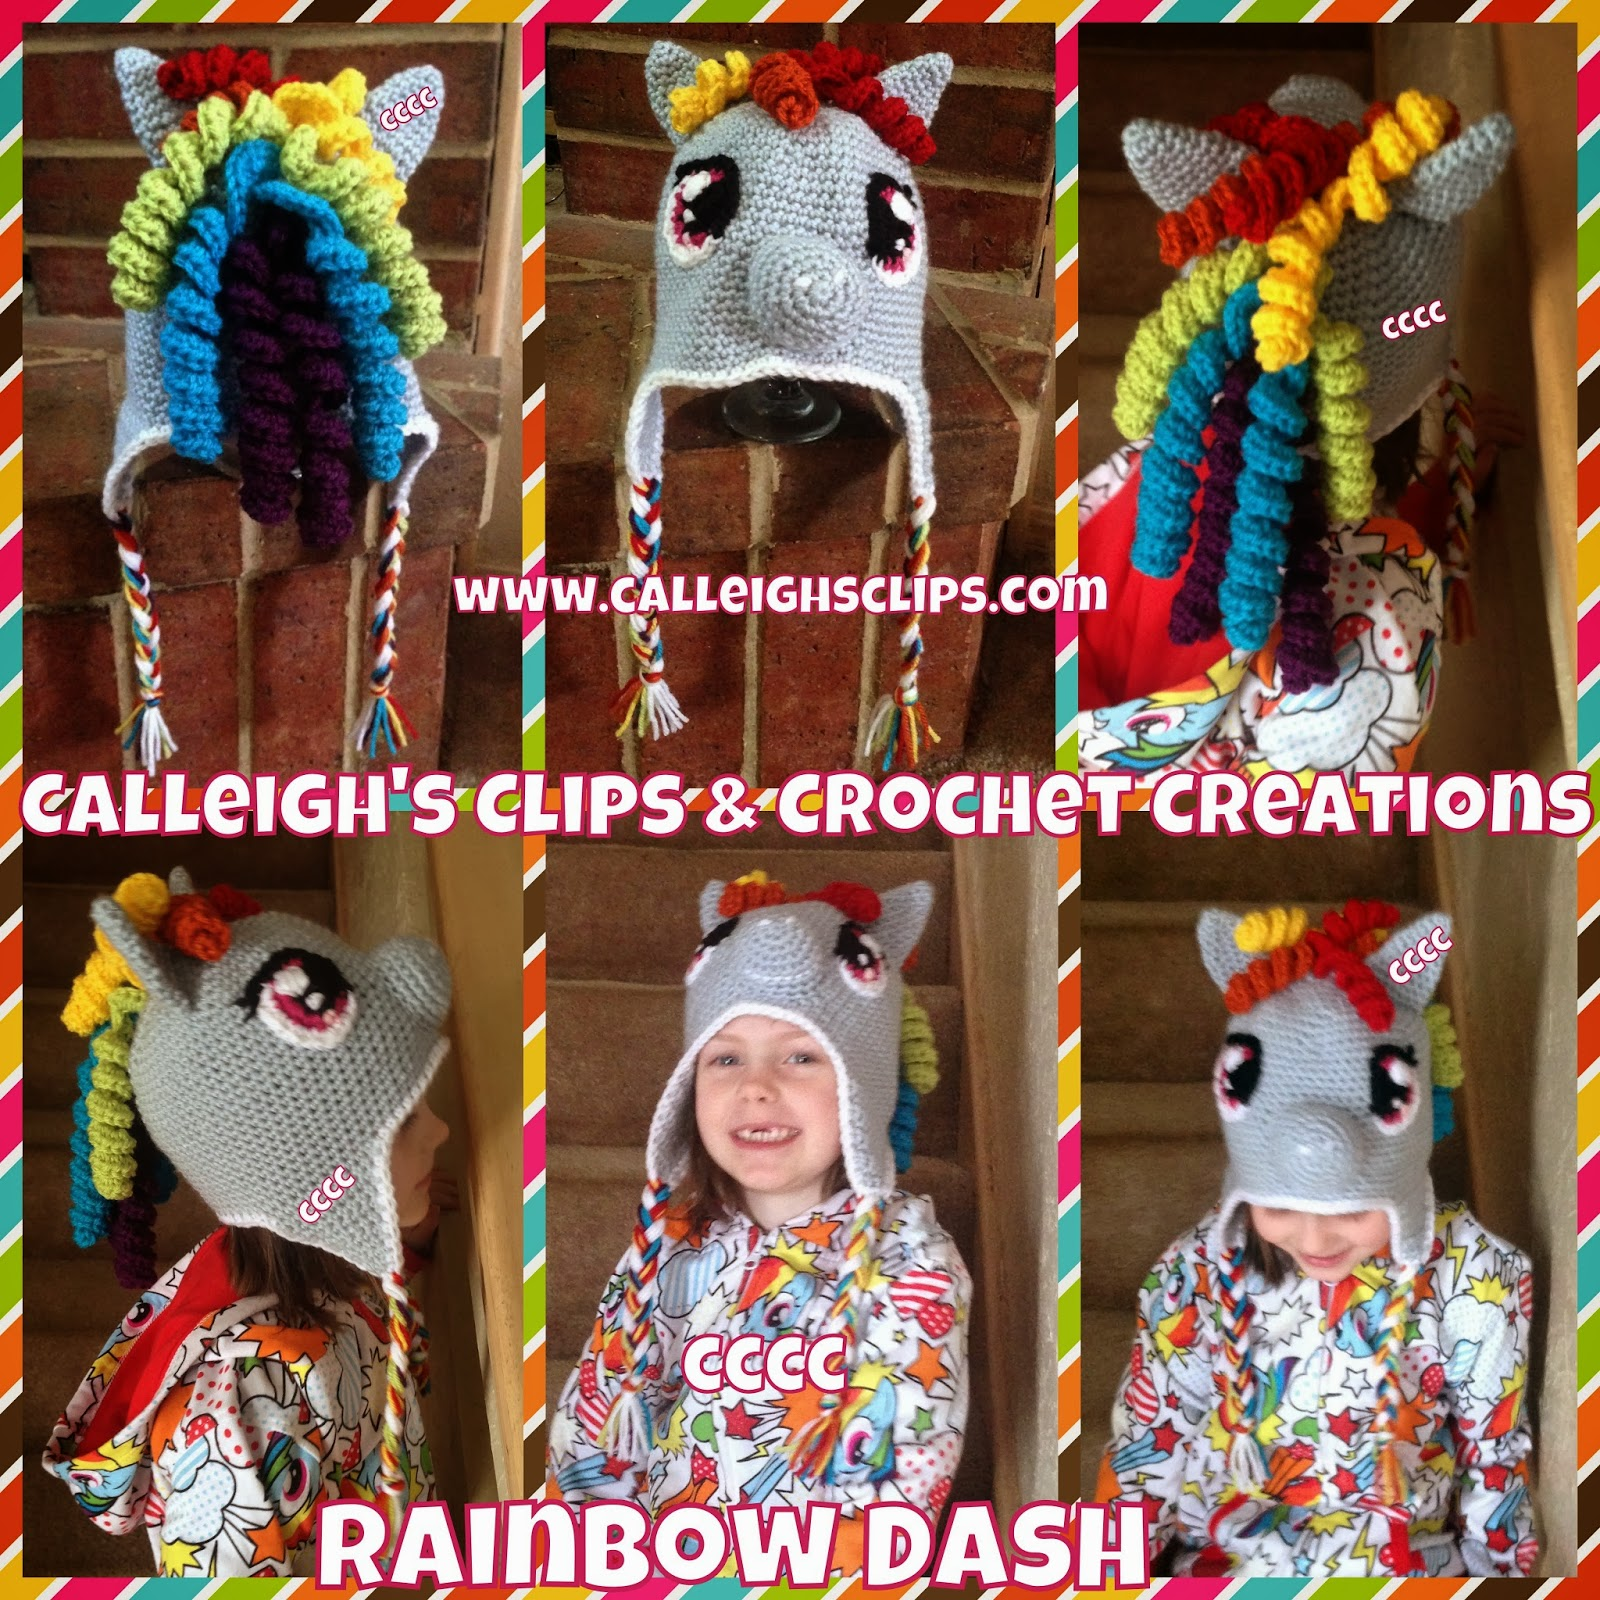 Calleigh\'s Clips & Crochet Creations: Pony and Hero Hat Creations